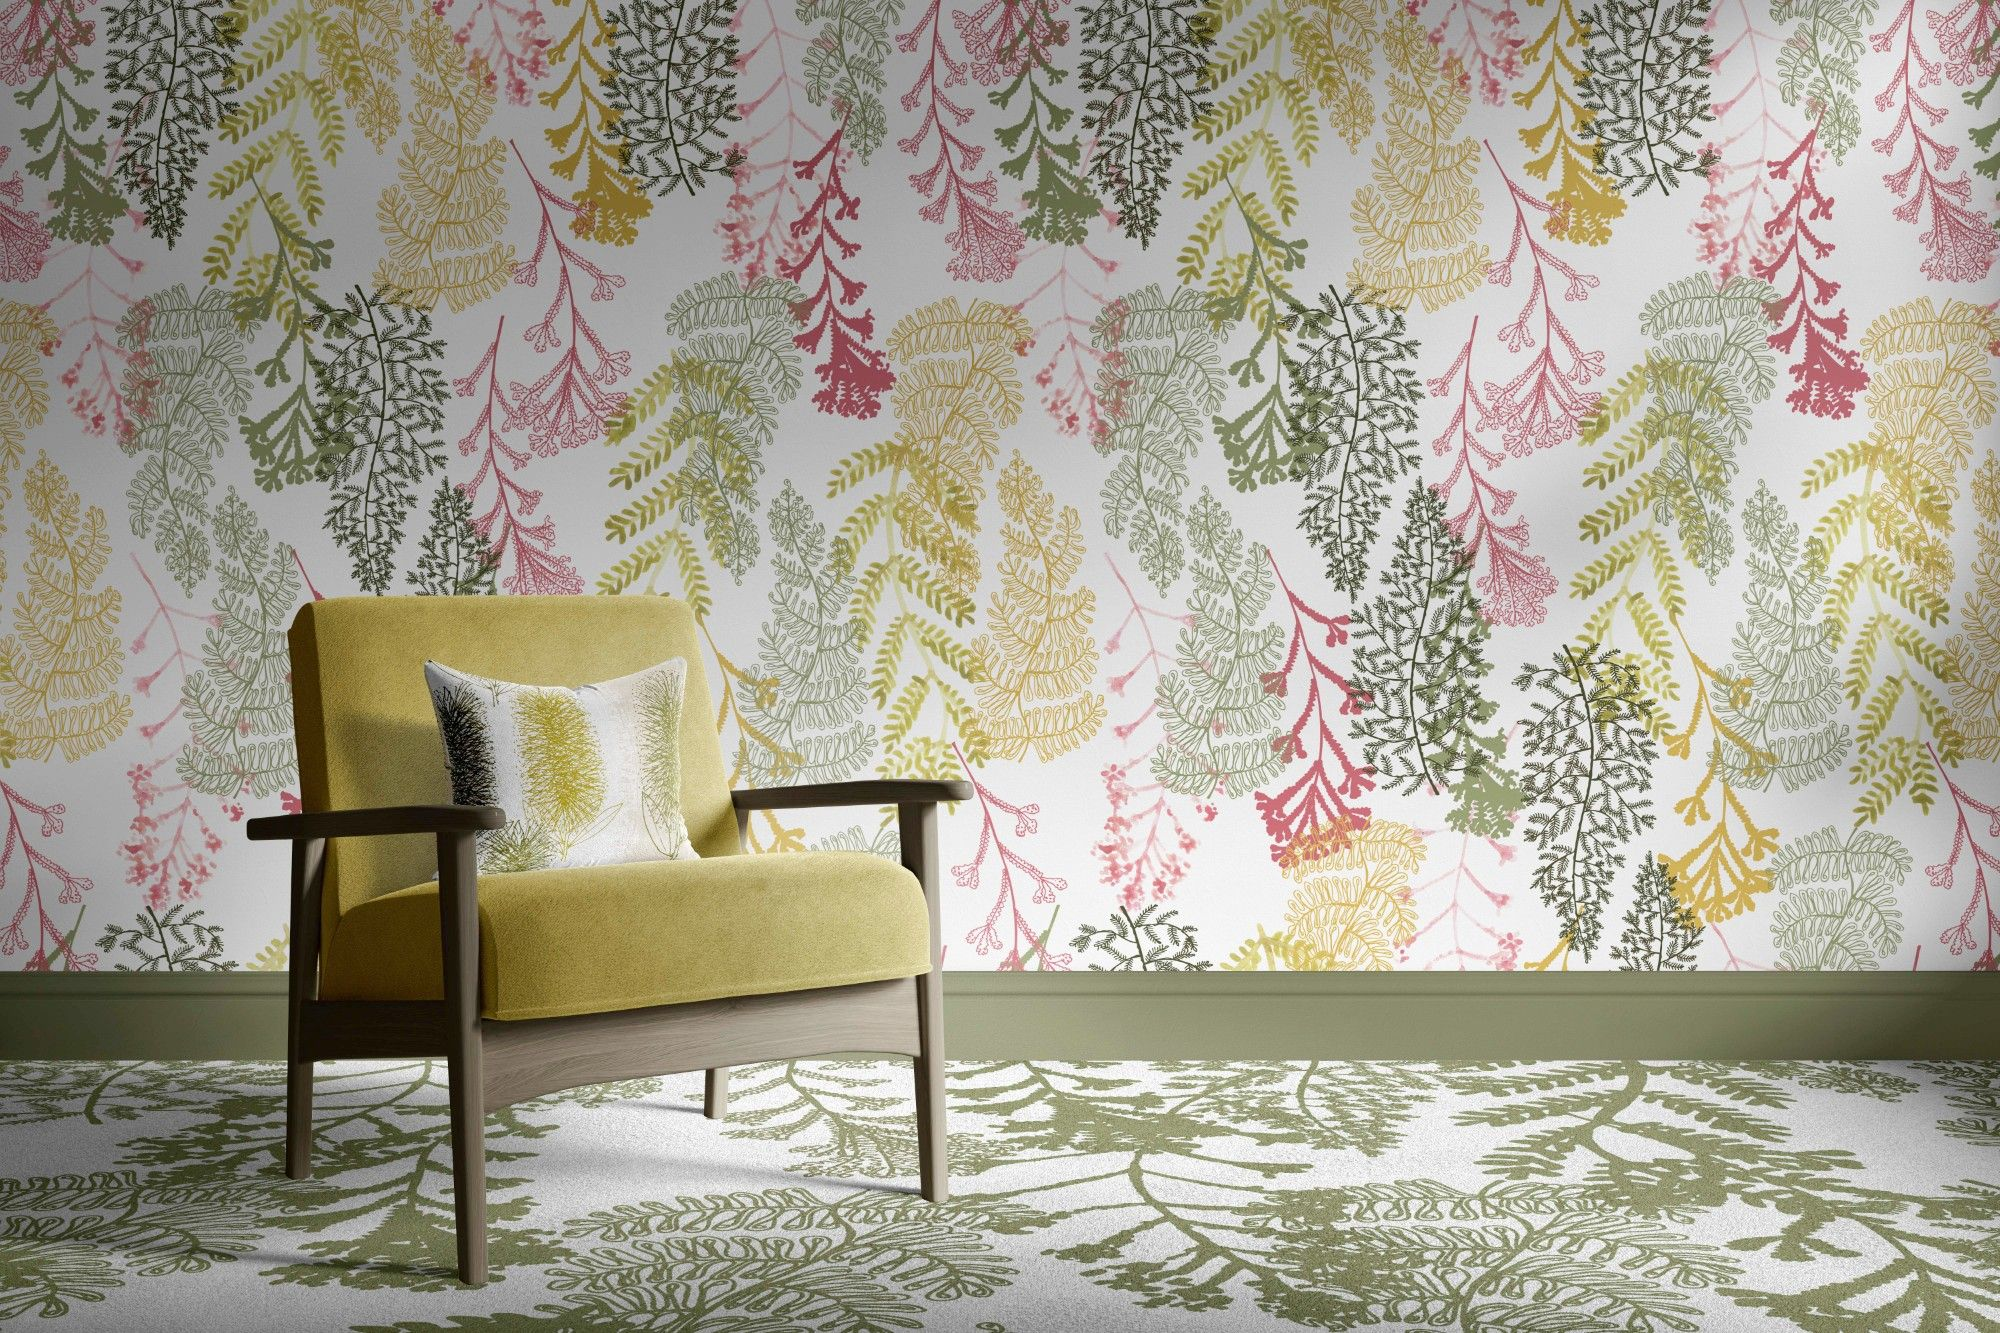 bushland blooms concept upholstery carpet and wallpaper